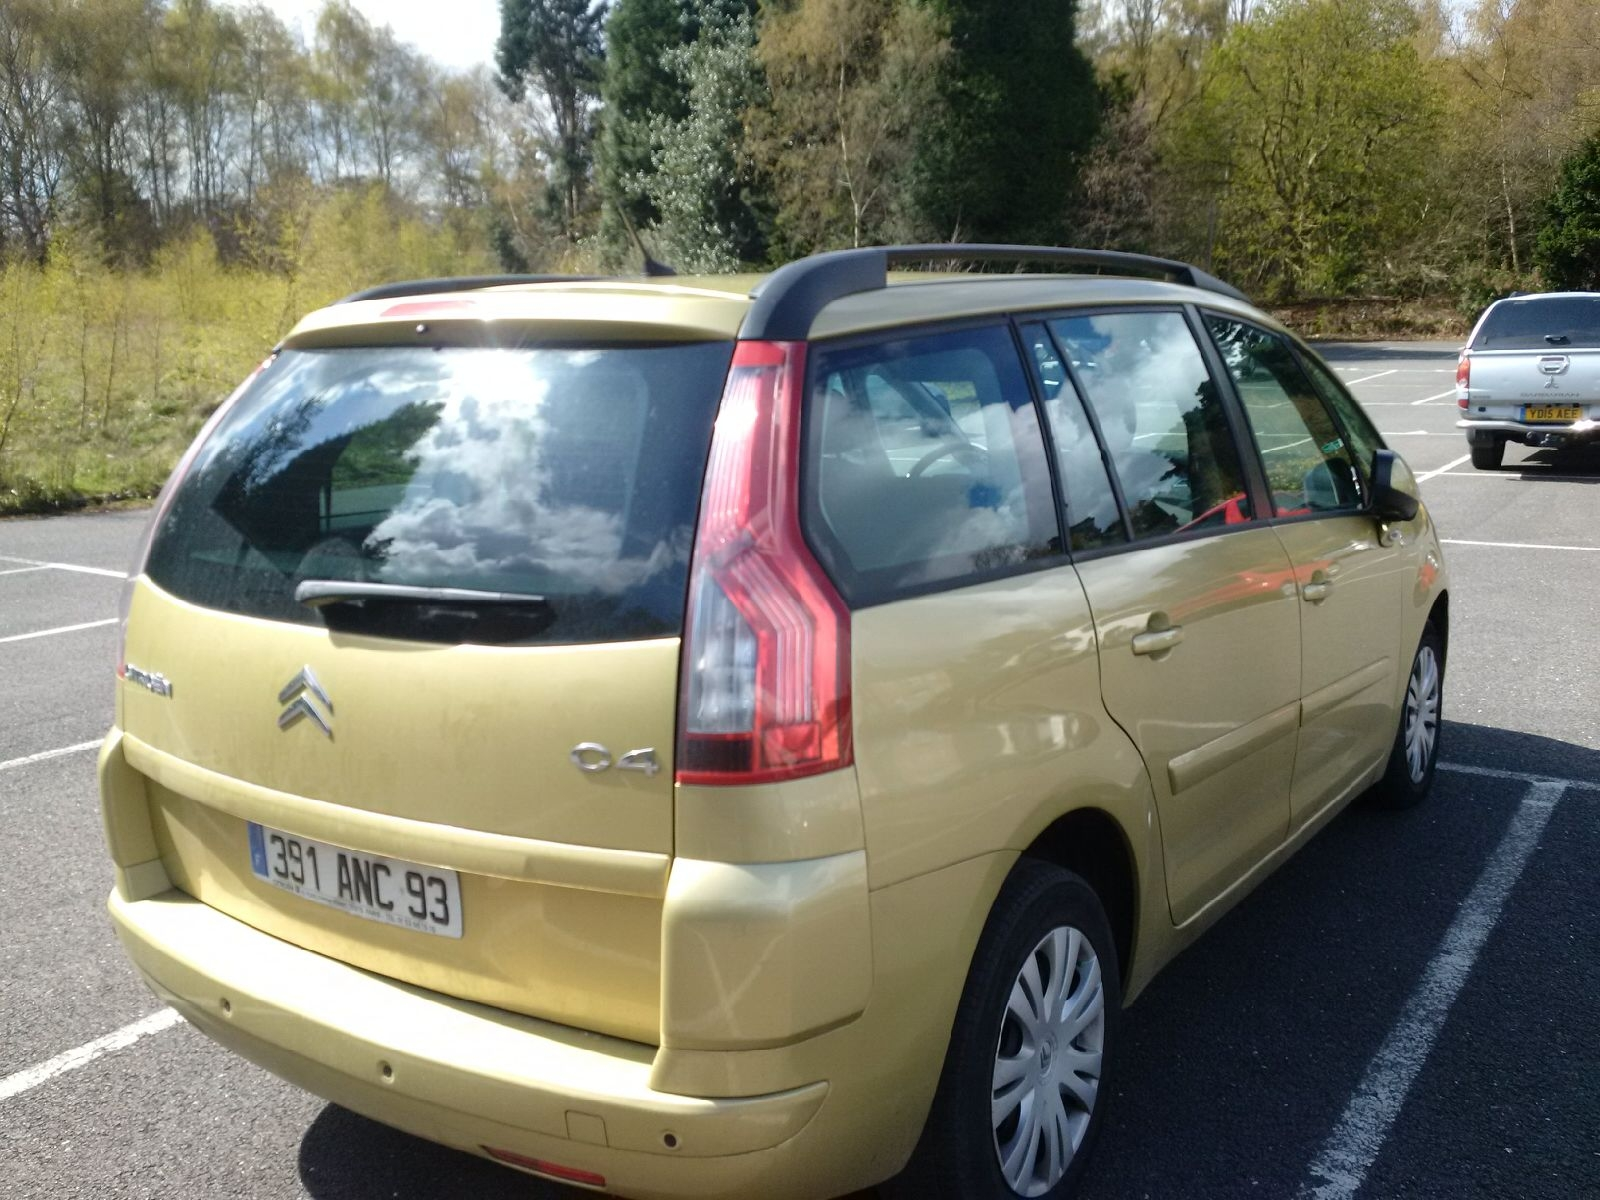 citroen c4 grand picasso 10 2008 metallic gold lieu. Black Bedroom Furniture Sets. Home Design Ideas